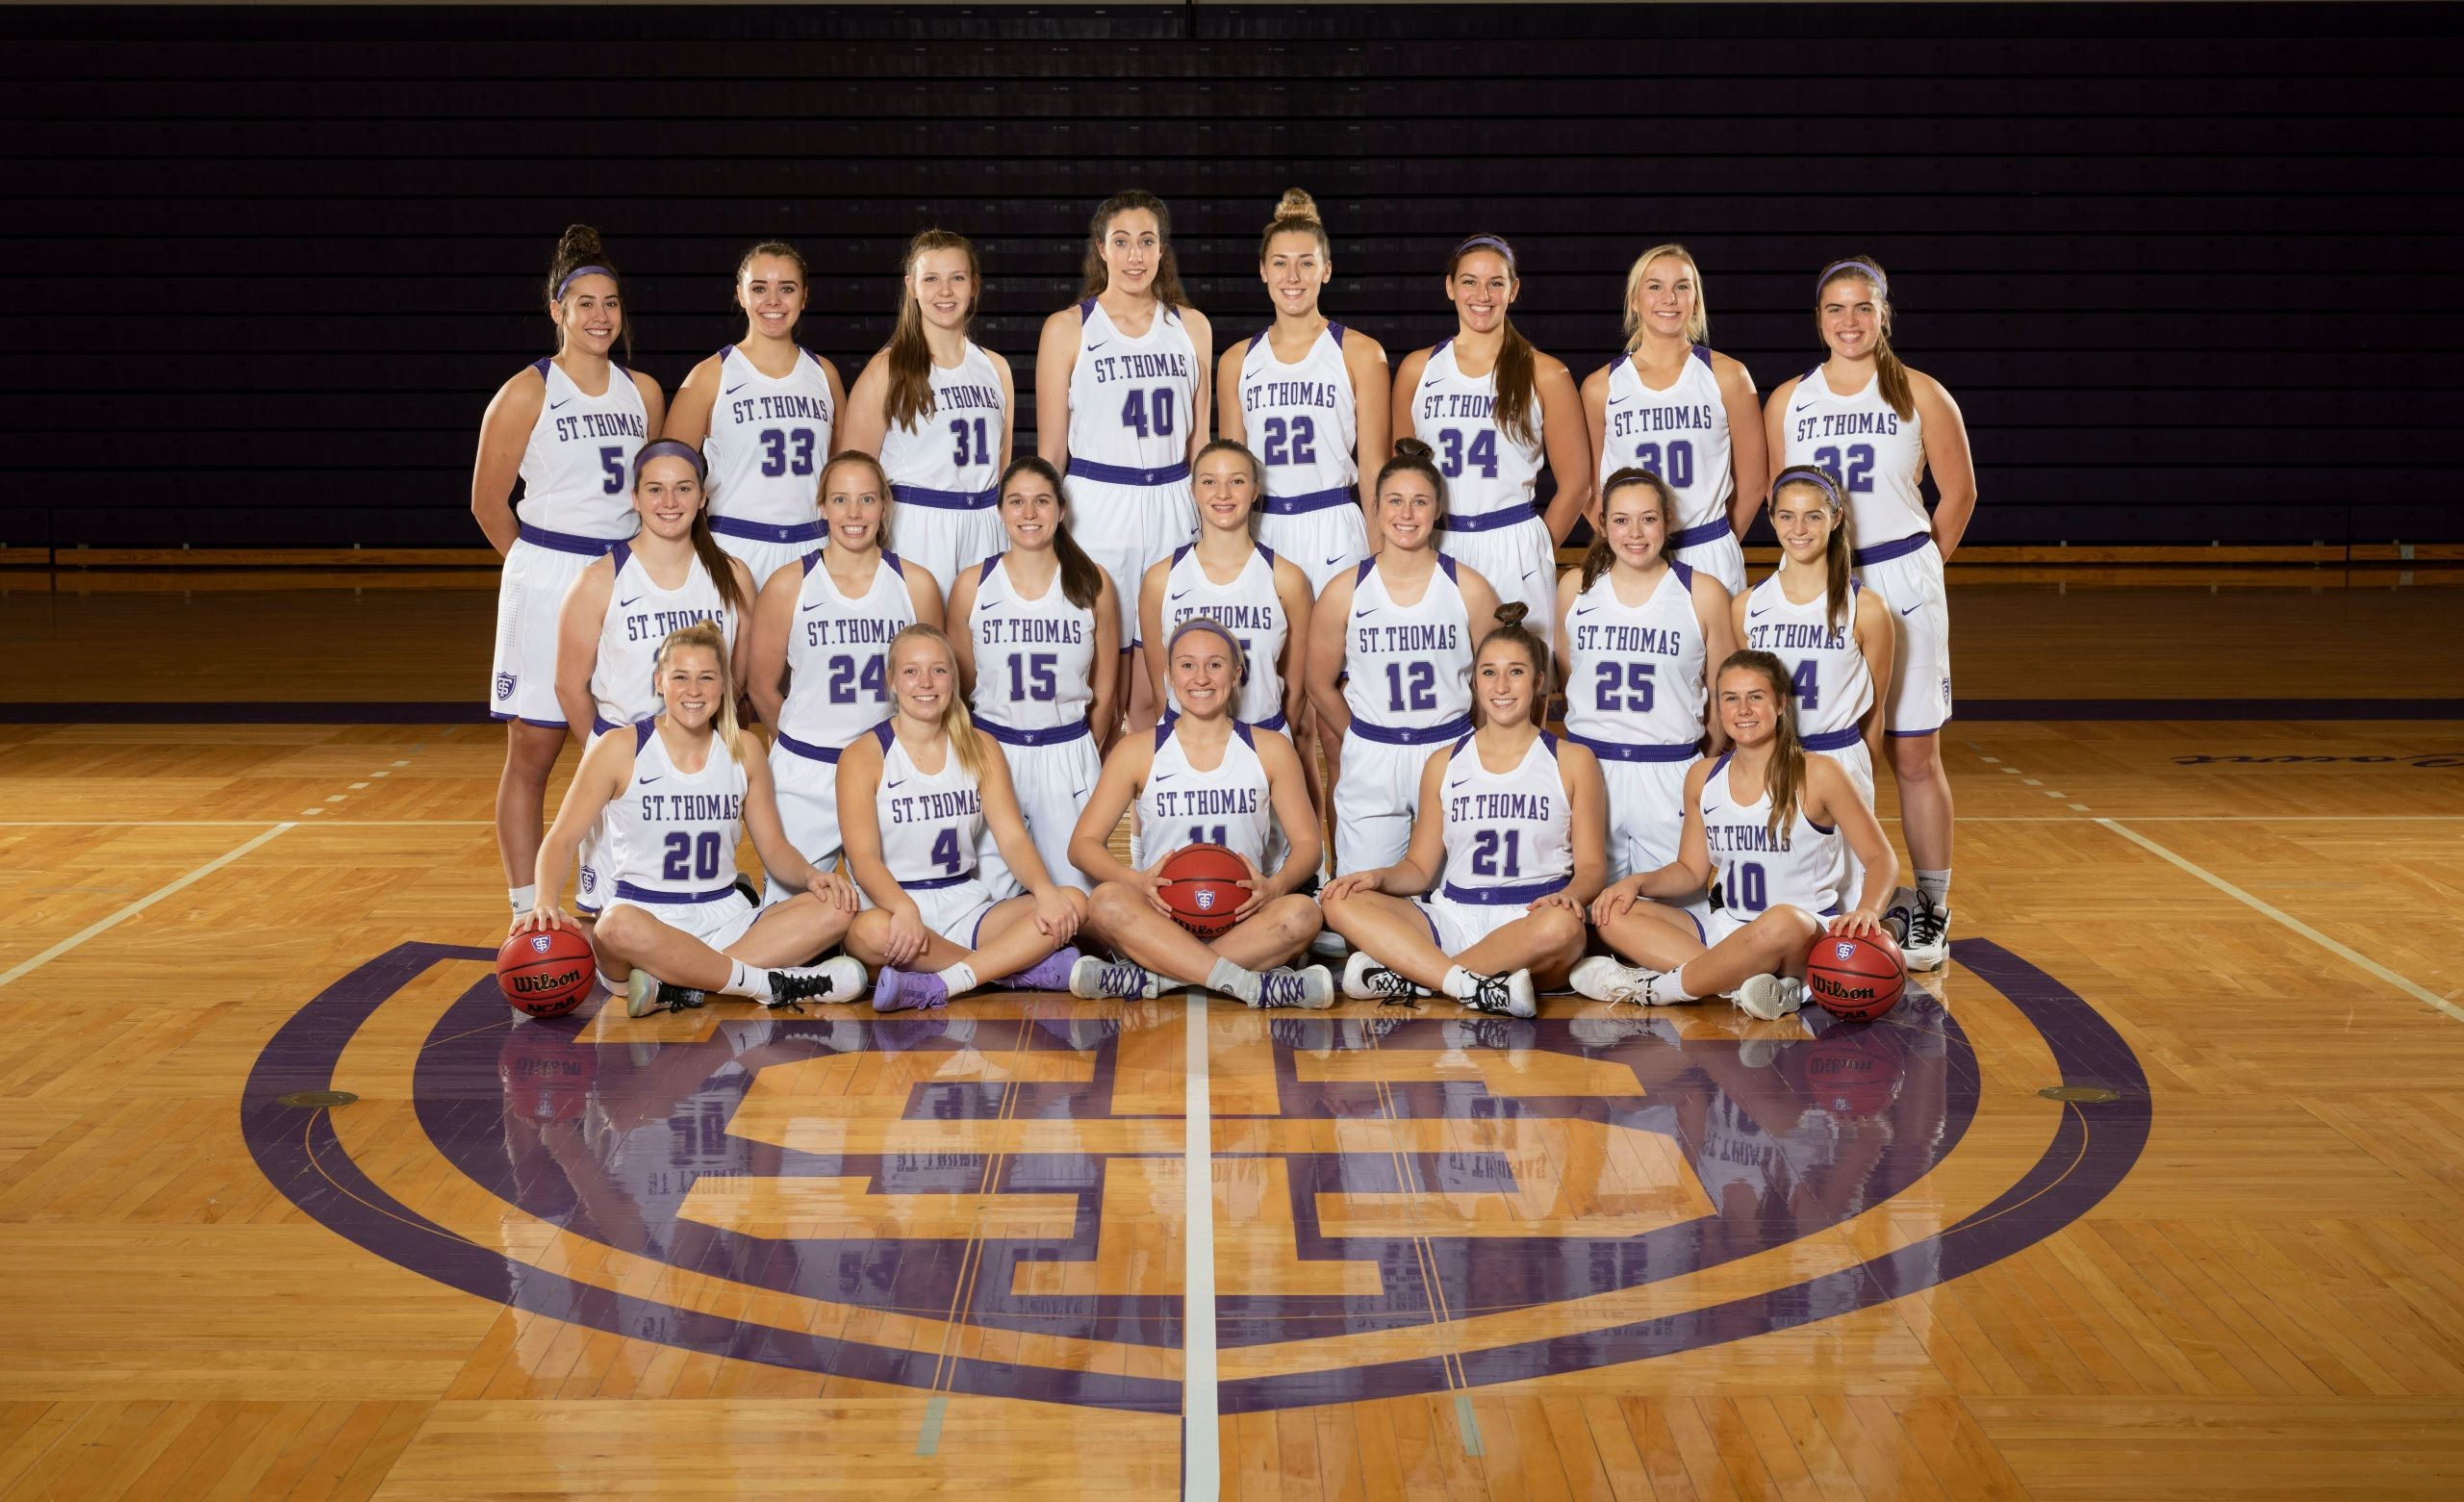 the St. Thomas Women's Basketball team poses for a photo together